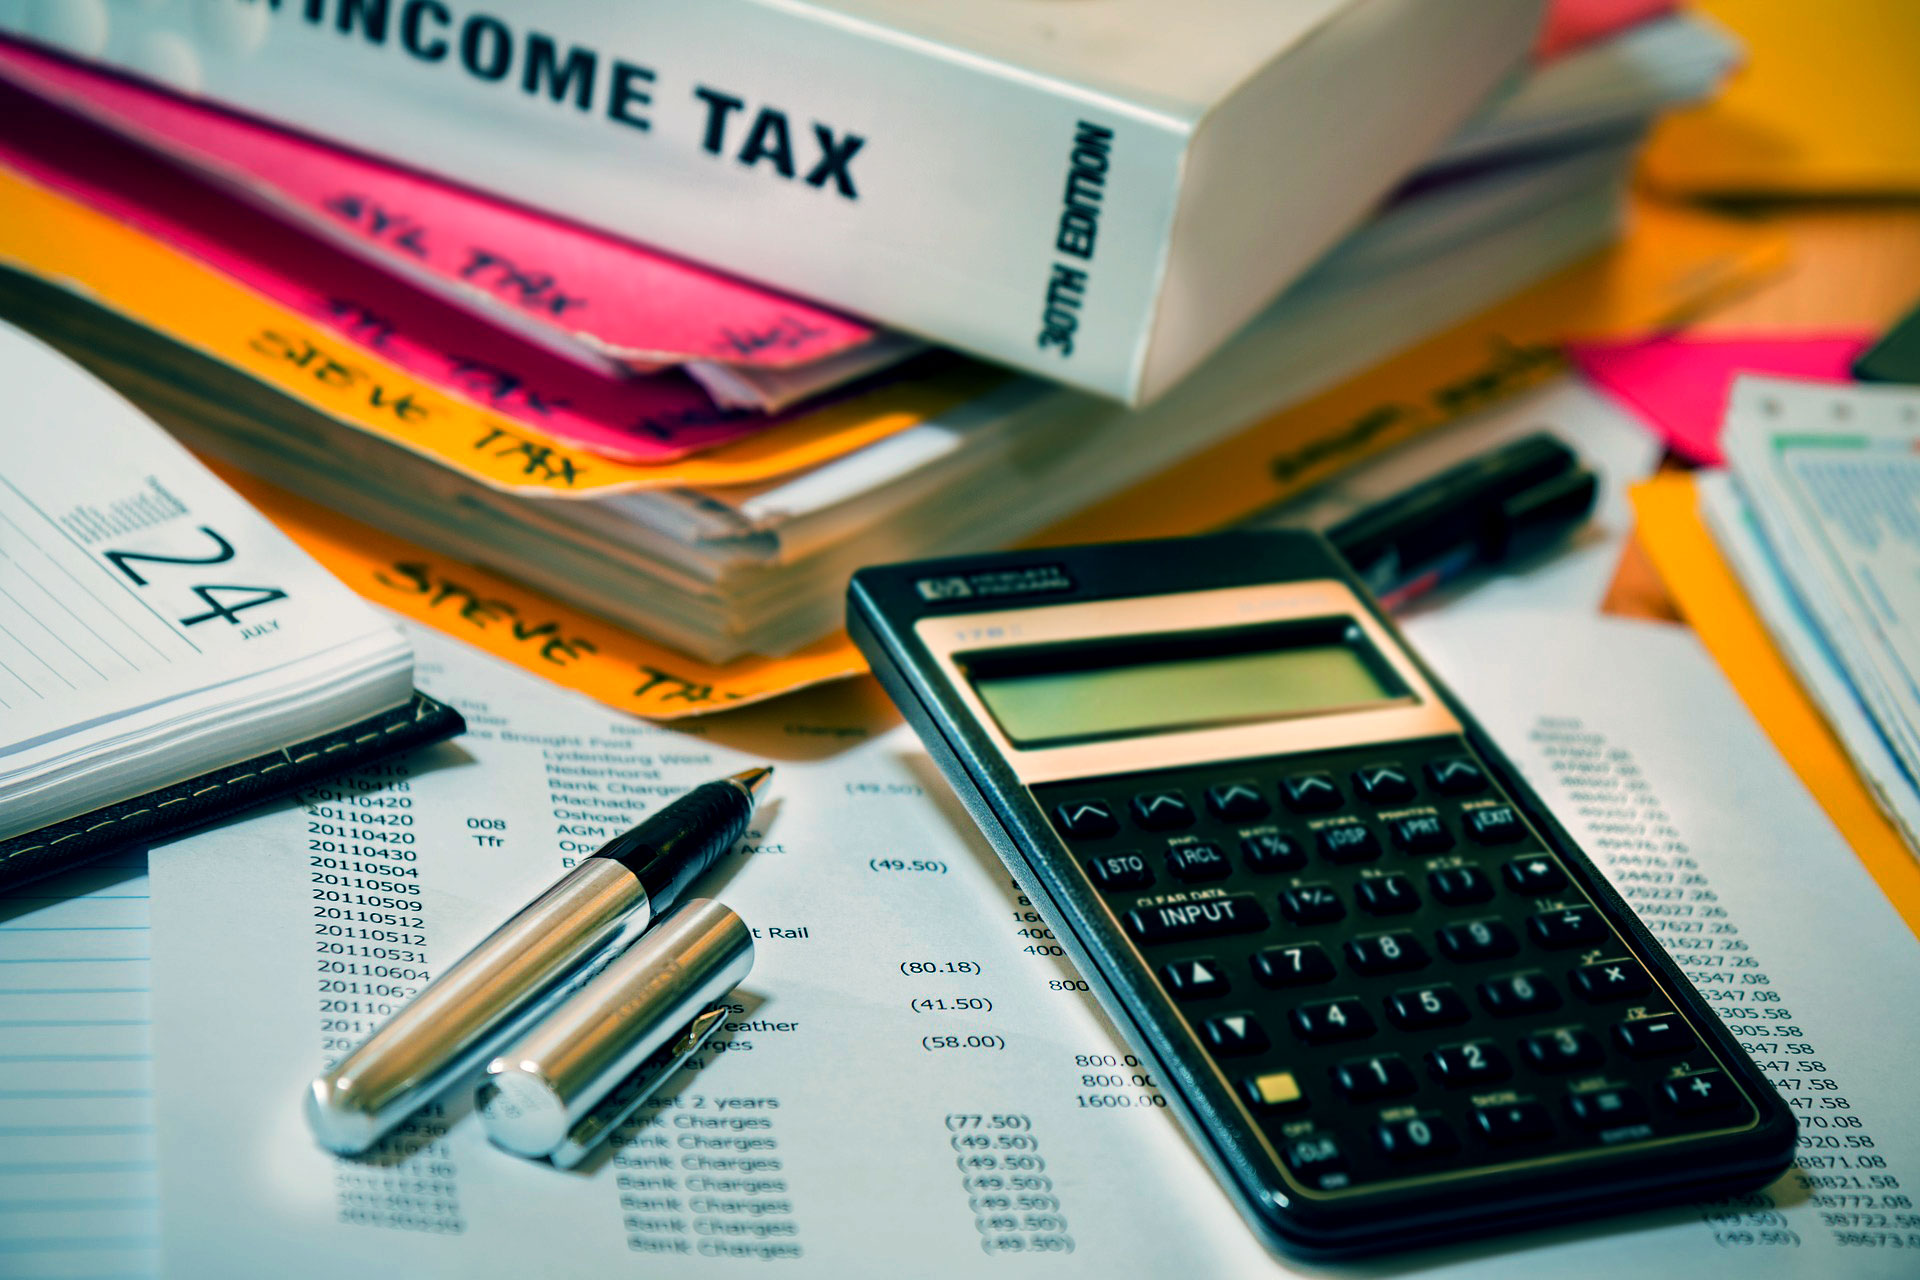 income tax 4097292 1920 - Διαδικασία έναρξης επιχείρησης - εταιρείας